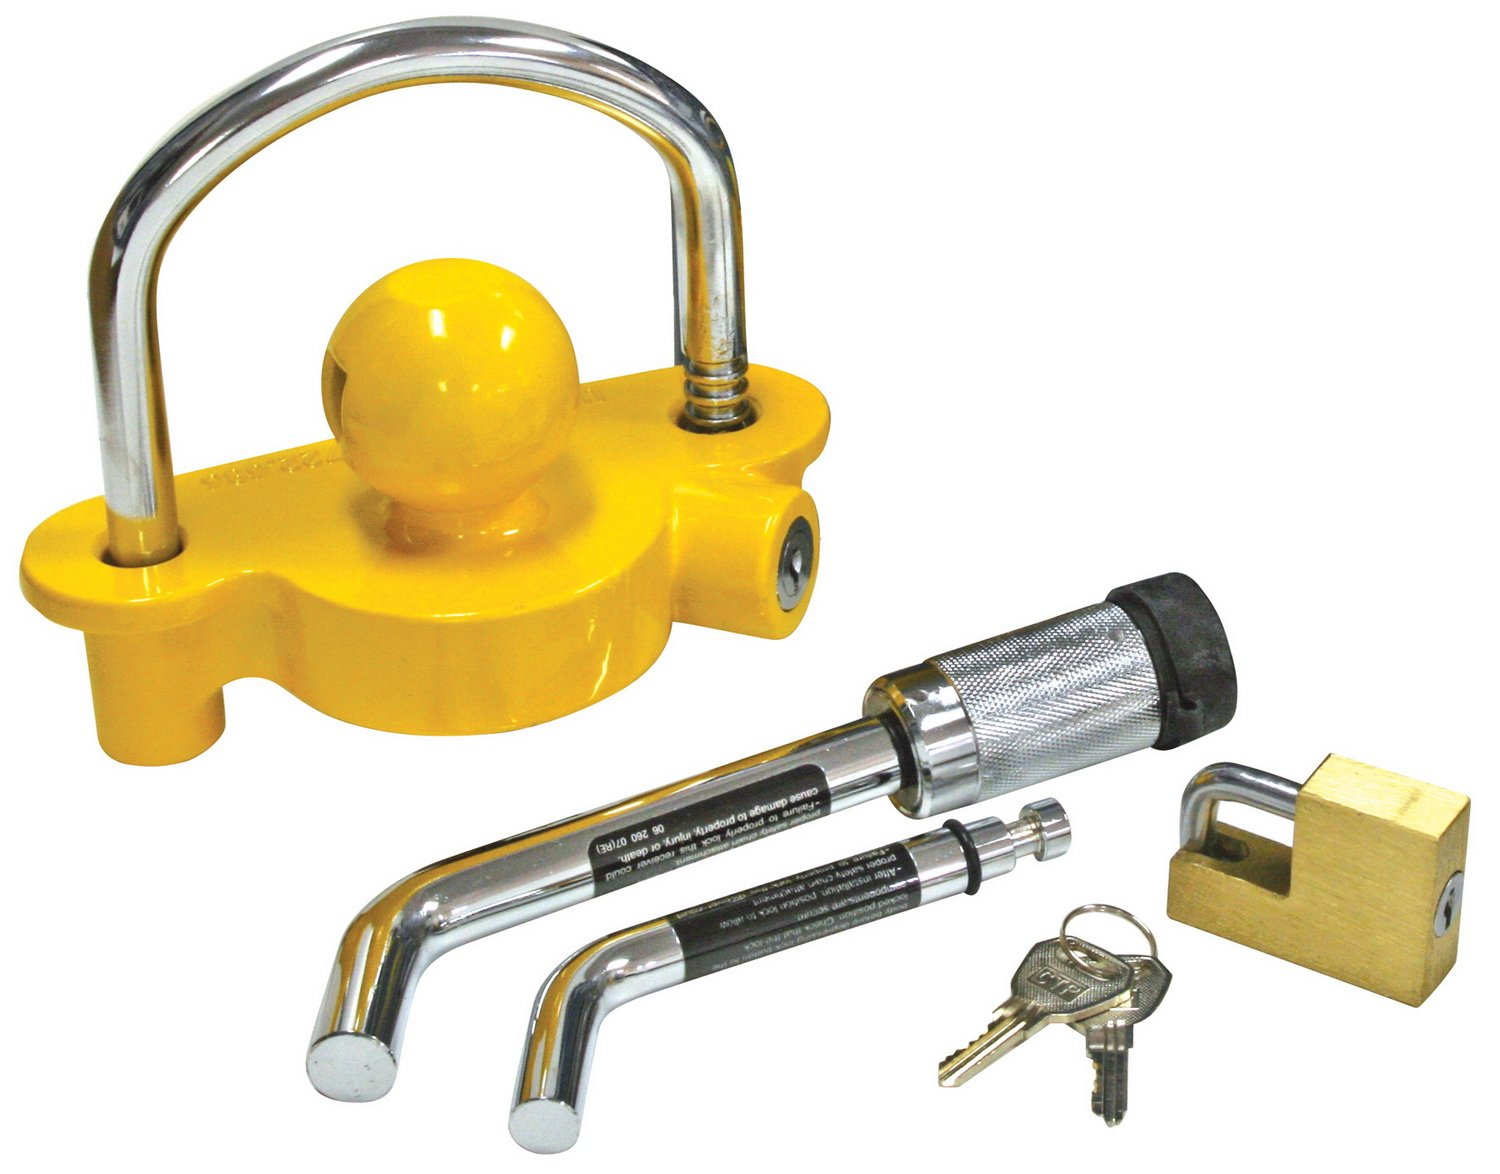 Reese Towpower 7014700 Tow 'N Store Lock Kit by Reese Towpower